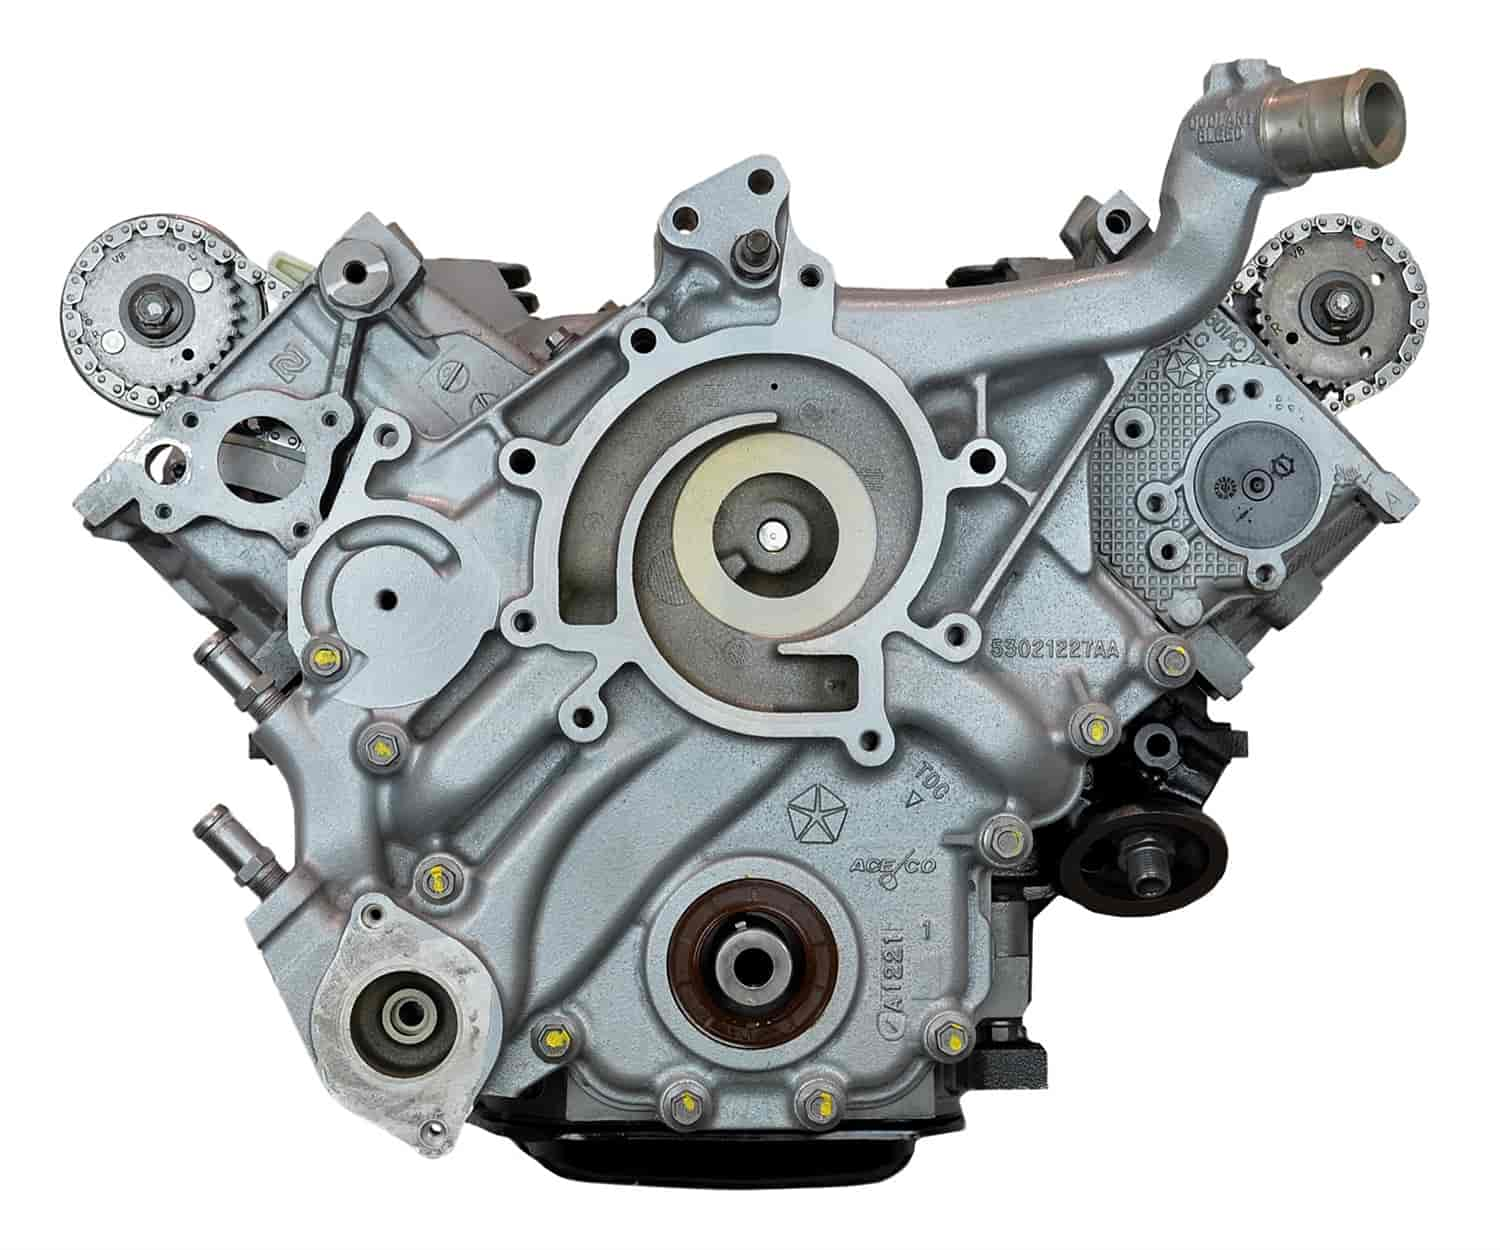 ATK Engines VD93: Remanufactured Crate Engine For 1999